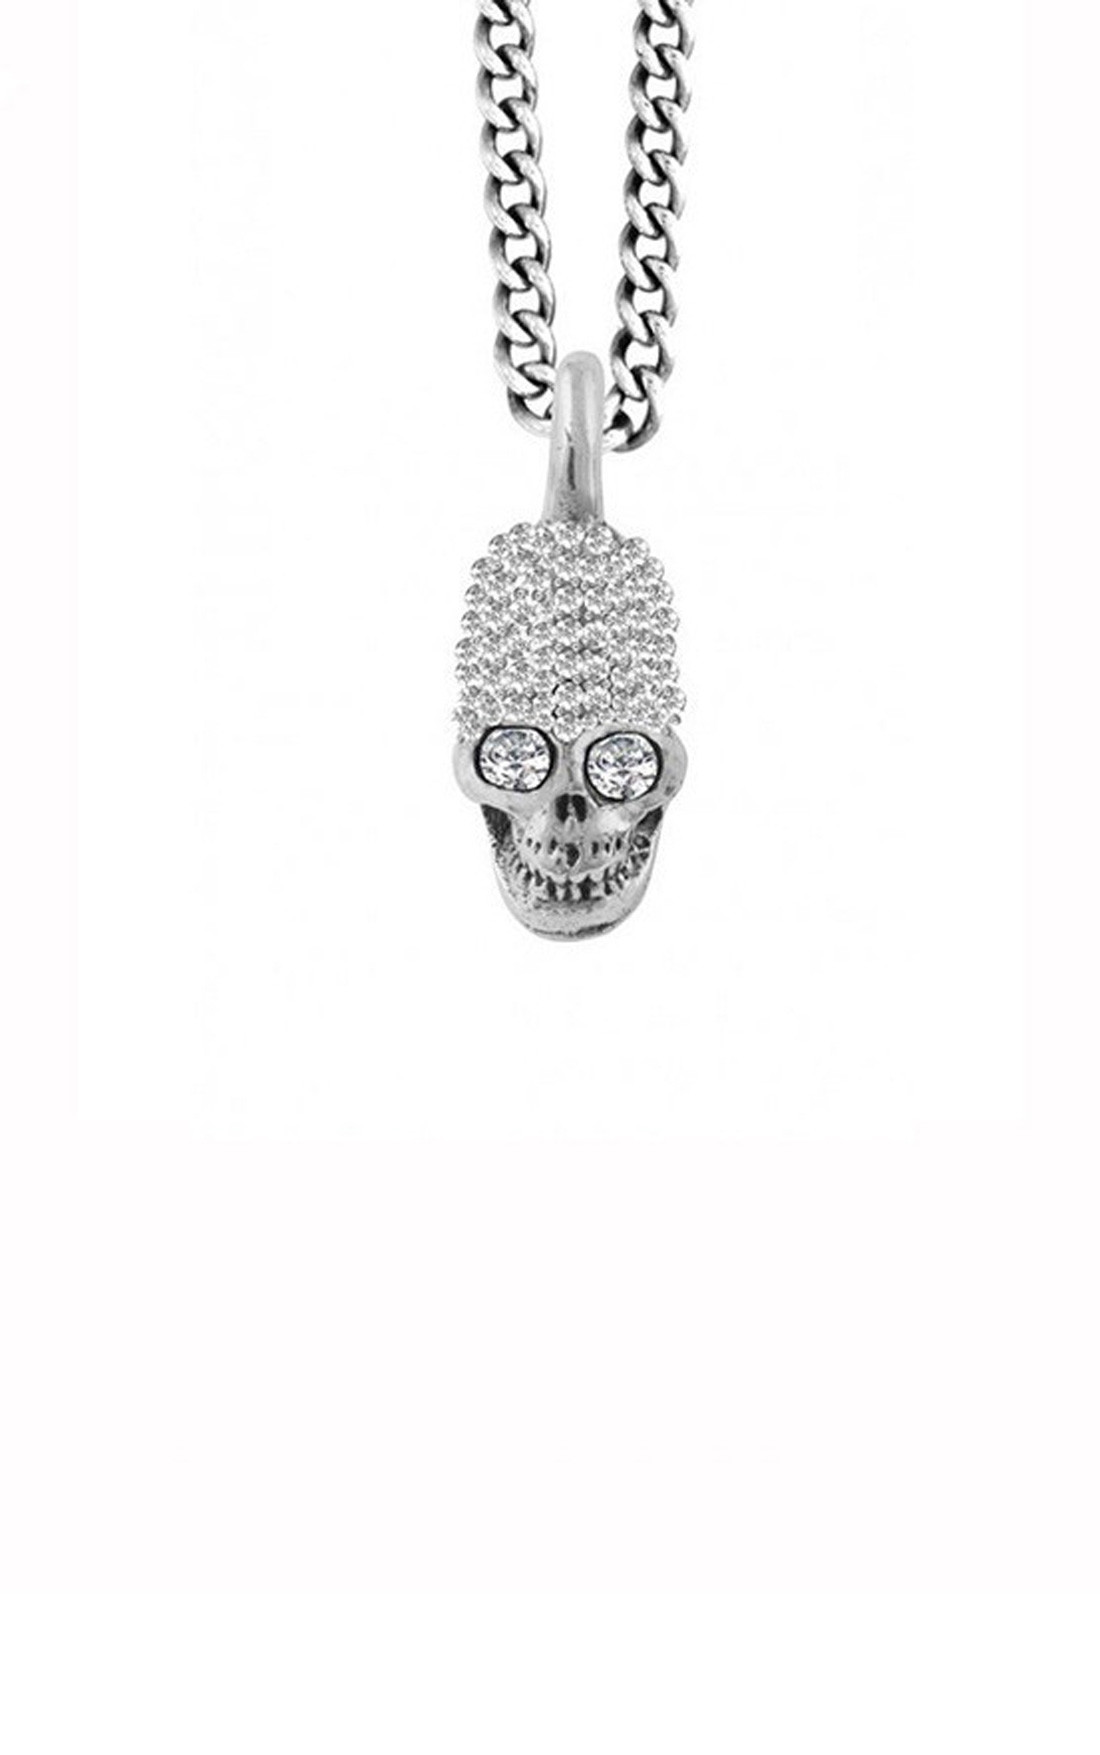 King Baby - Small Skull Pendant Pave Cz  (K10-9077)